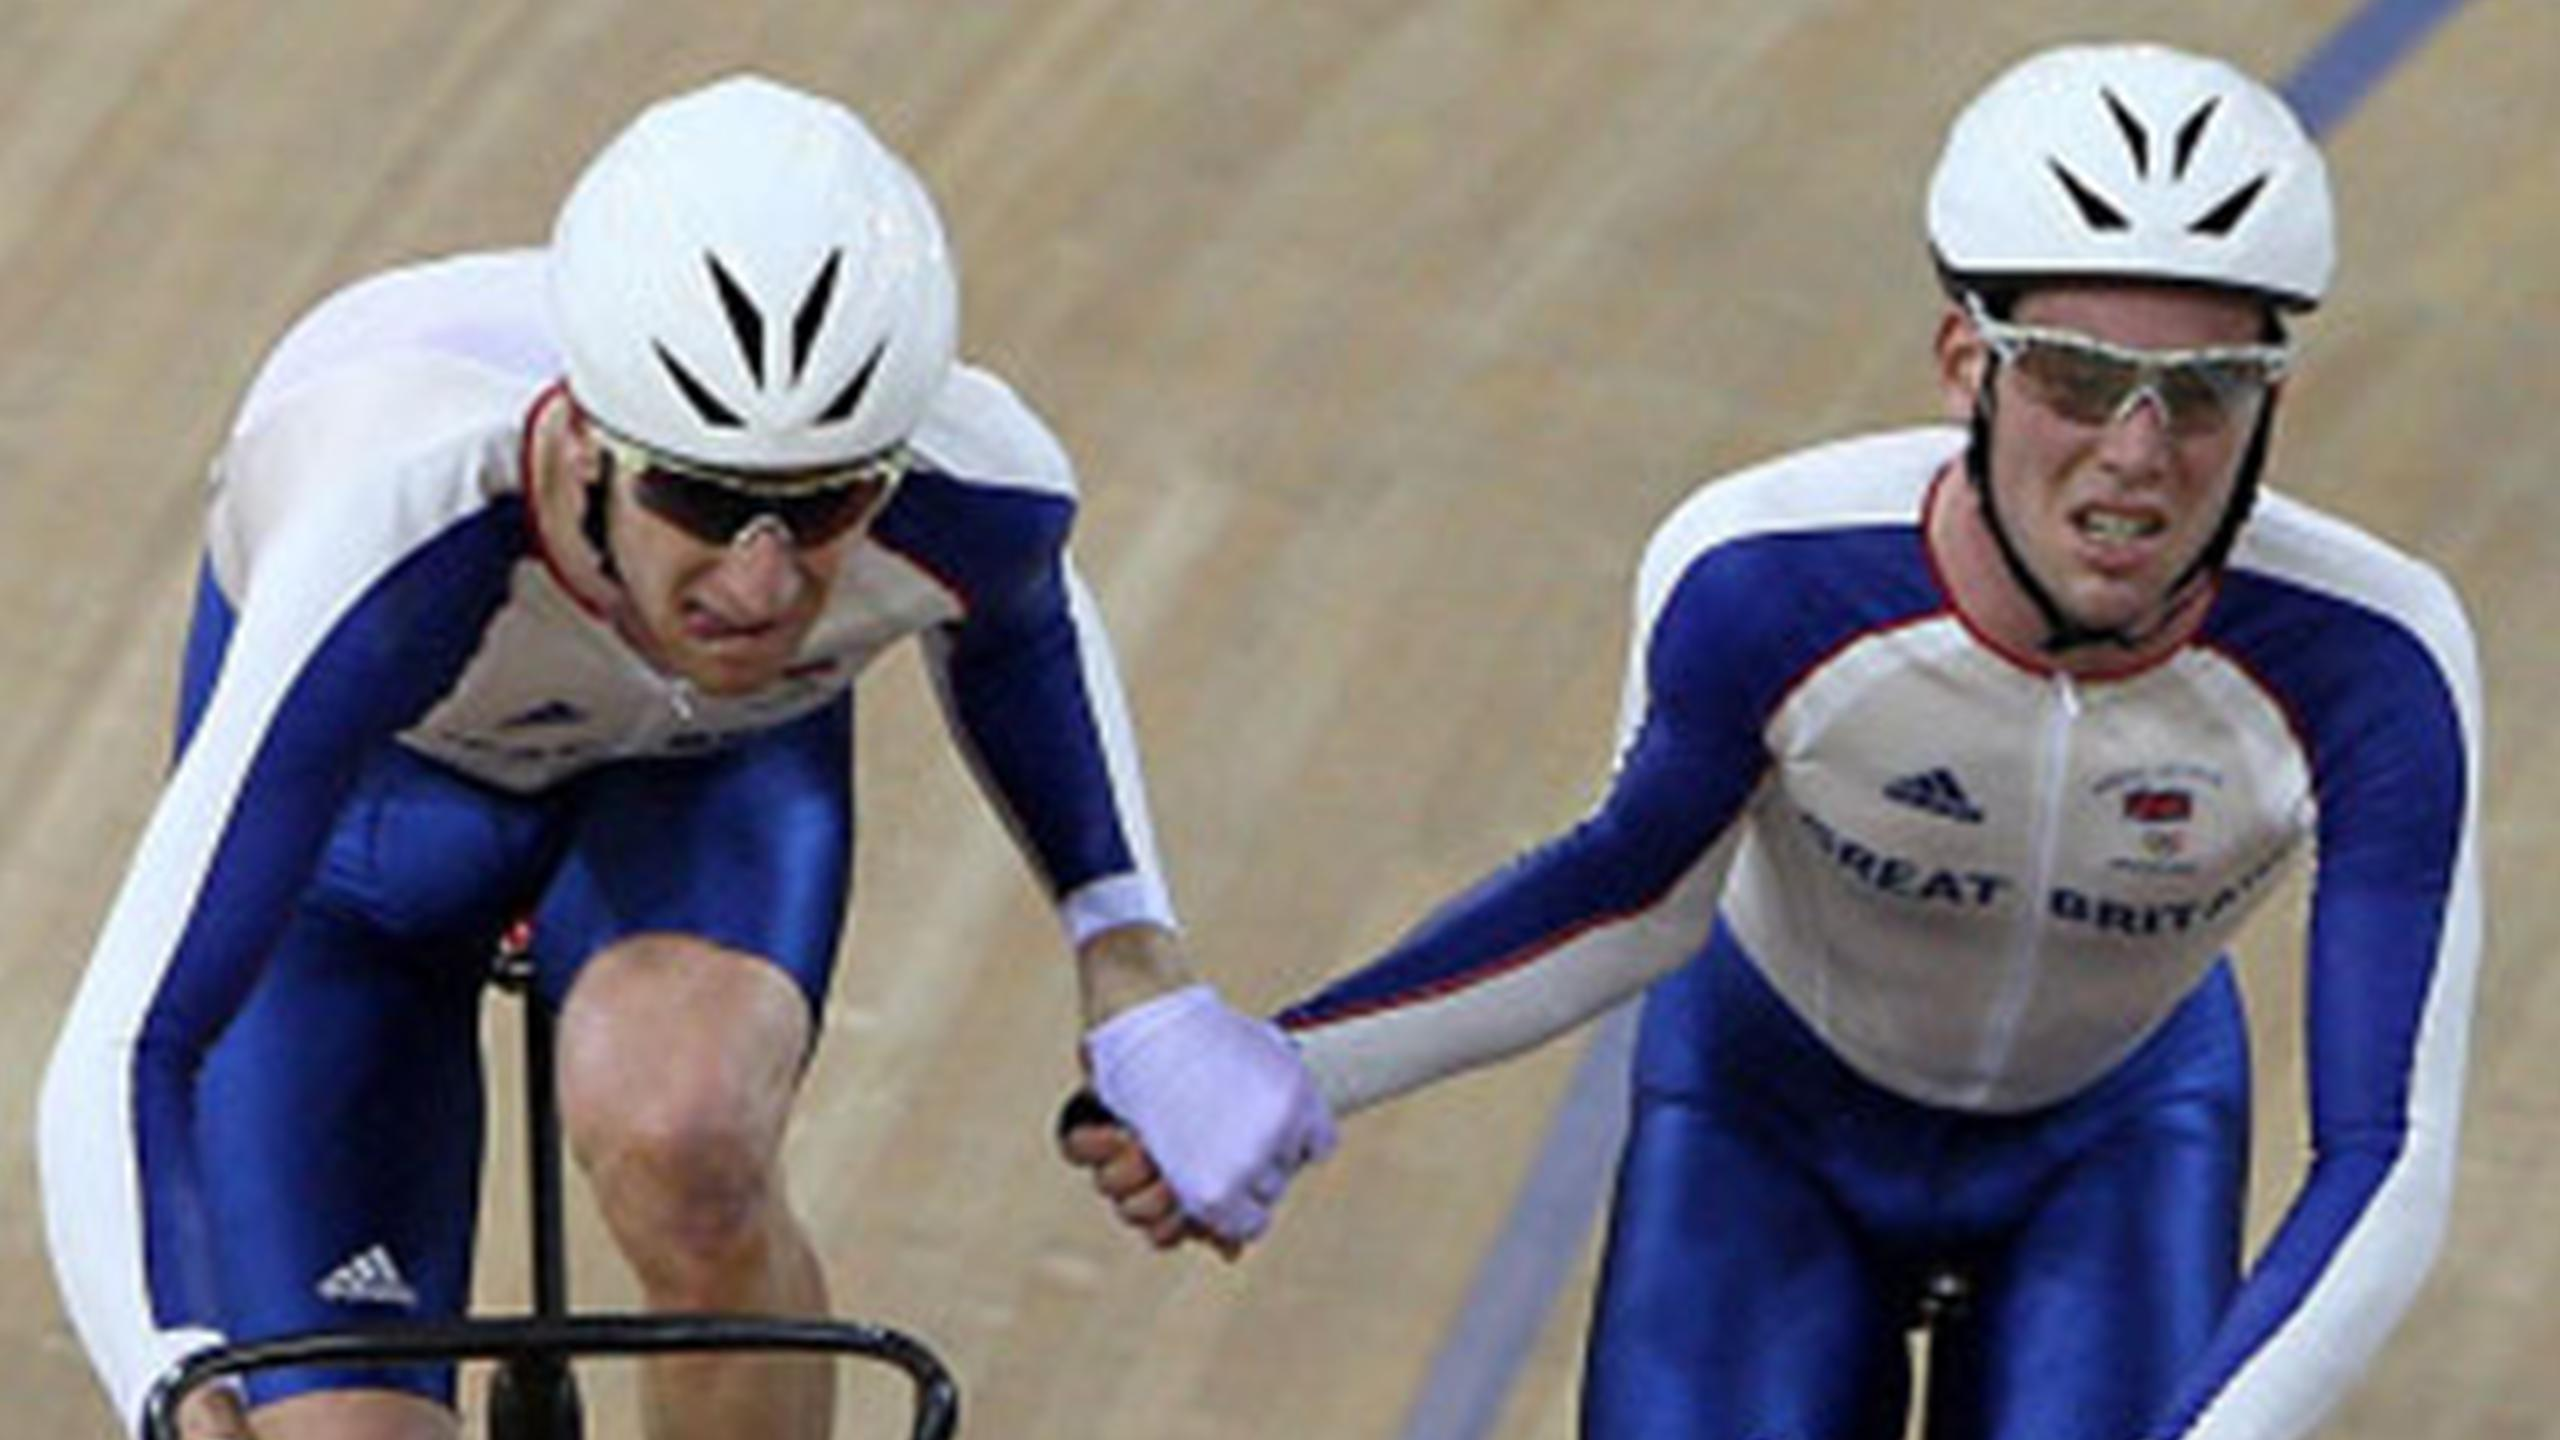 Great Britain's Bradley Wiggins (left) and Mark Cavendish during the Men's Madison at the Laoshan Velodrome